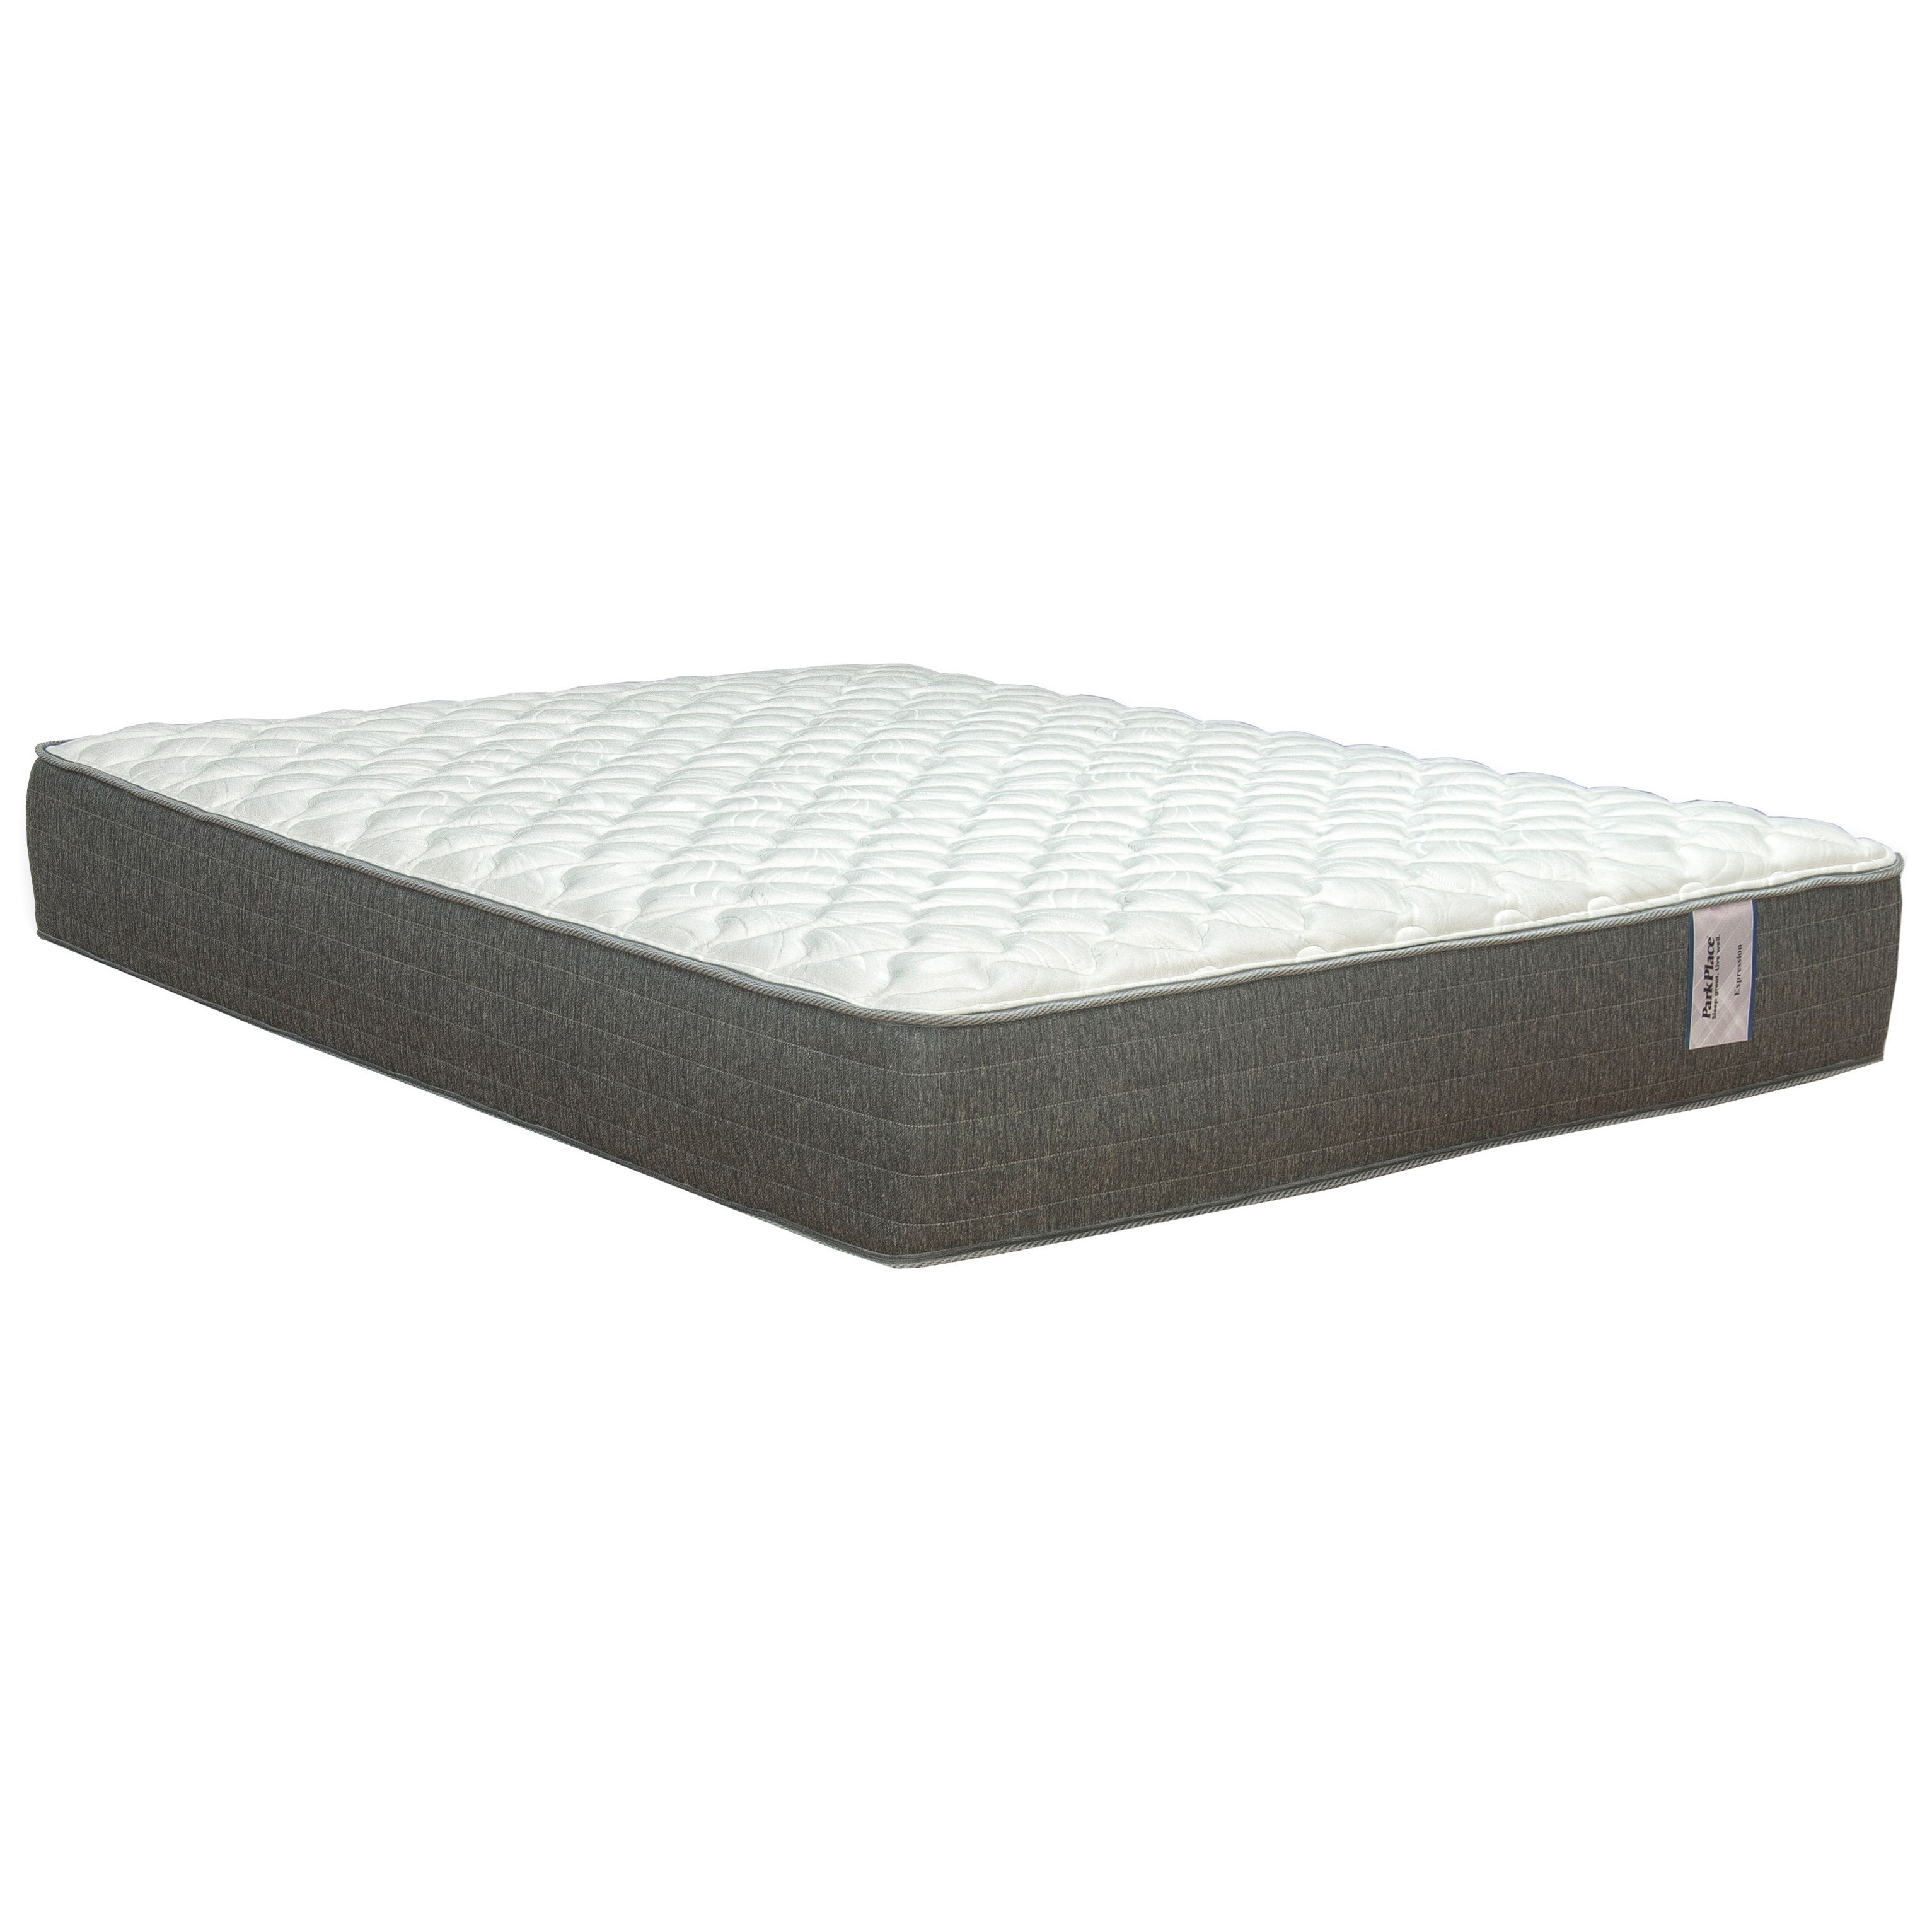 Park Place Corp AC Expression FirmQueen 12 1/2